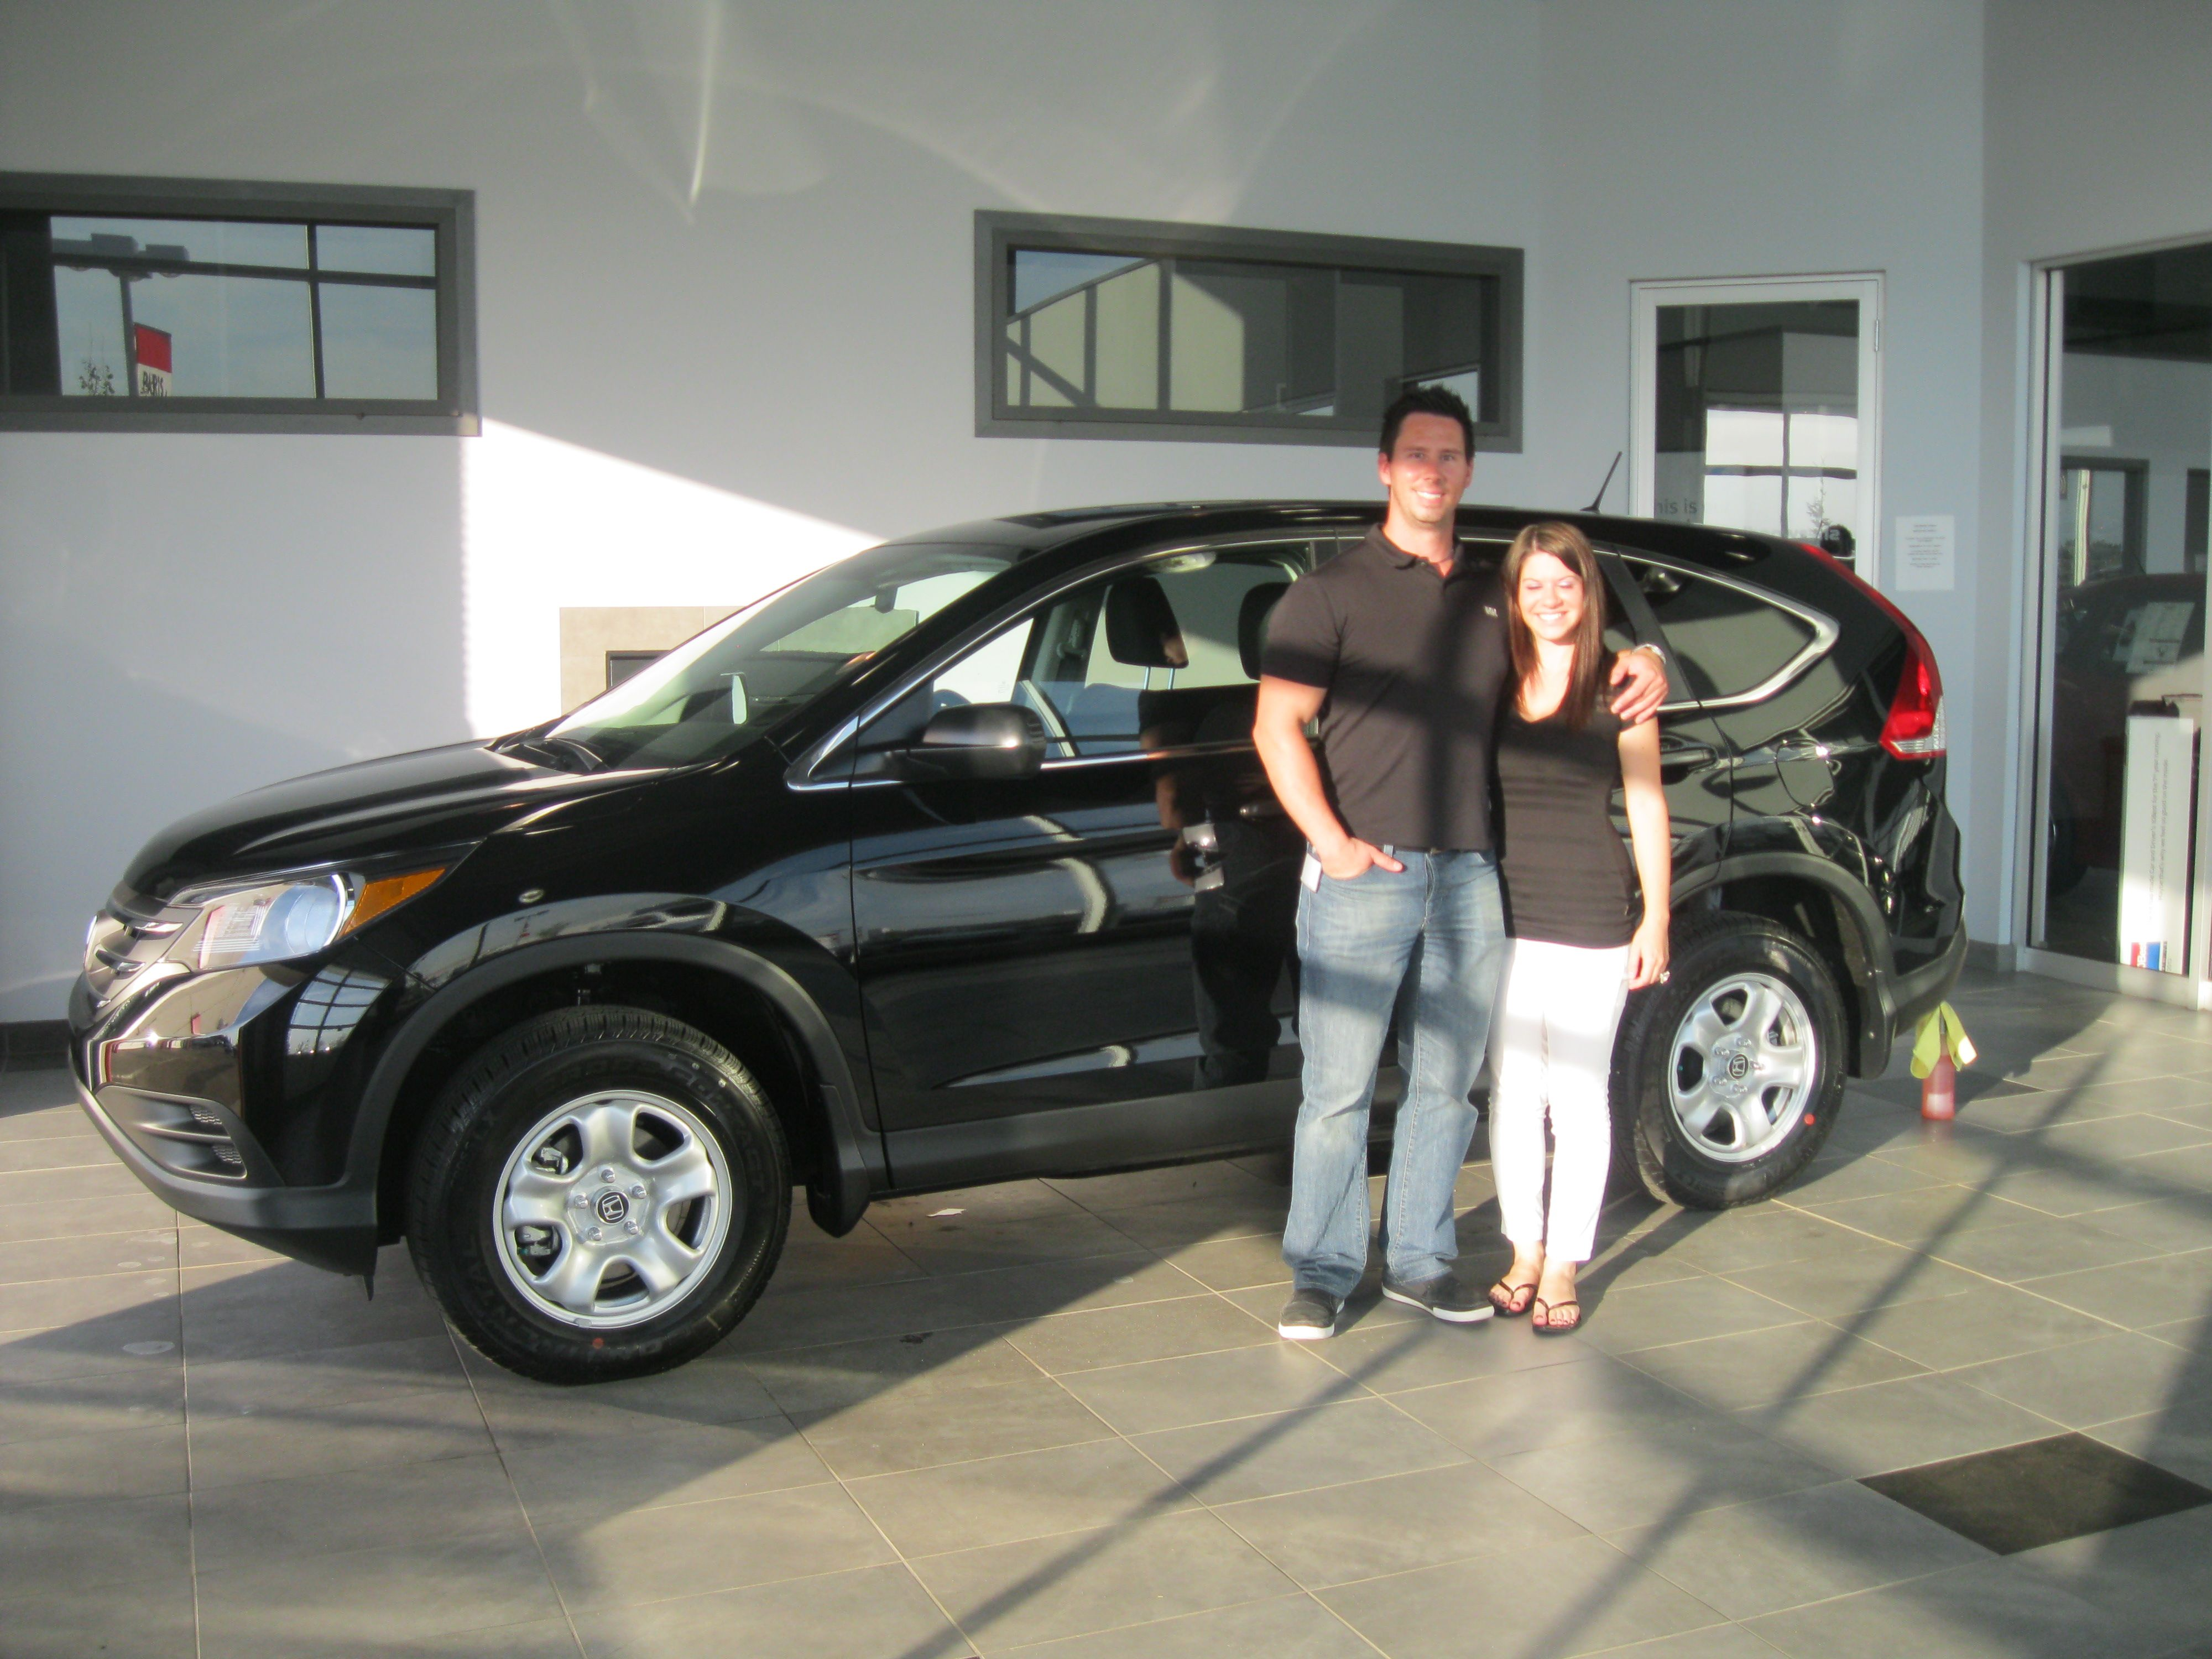 We 'sher-wood' love to congratulate Lara and Greg on the purchase of their brand new 2013 Honda CR-V LX!